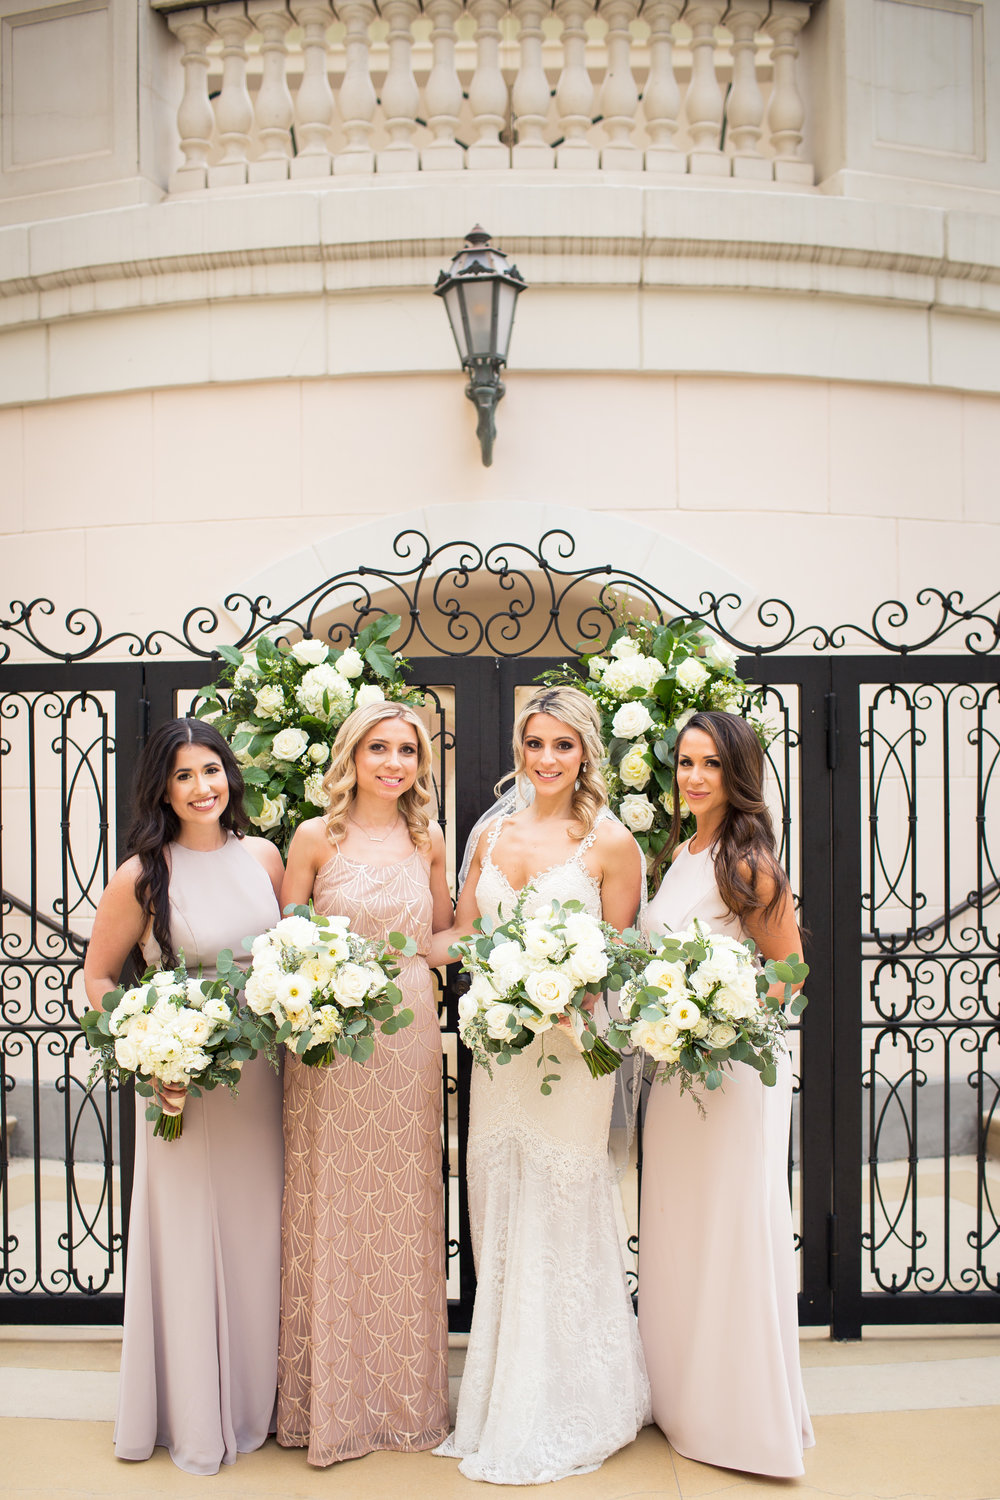 Bridal party in blush and champagne dresses.  Wedding Planner:  Andrea Eppolito Events   |   Photography  D2 Tuscan Wedding Photography   |  Videography  M Place Productions   |  Venue & Catering:  Bellagio   |  Floral & Decor:  Destinations by Design    |  Lighting:  LED Unplugged   |  Music: Classical Entertainment &  DJ Mike Fox   |  Hair & Make Up:  Amelia C & Co